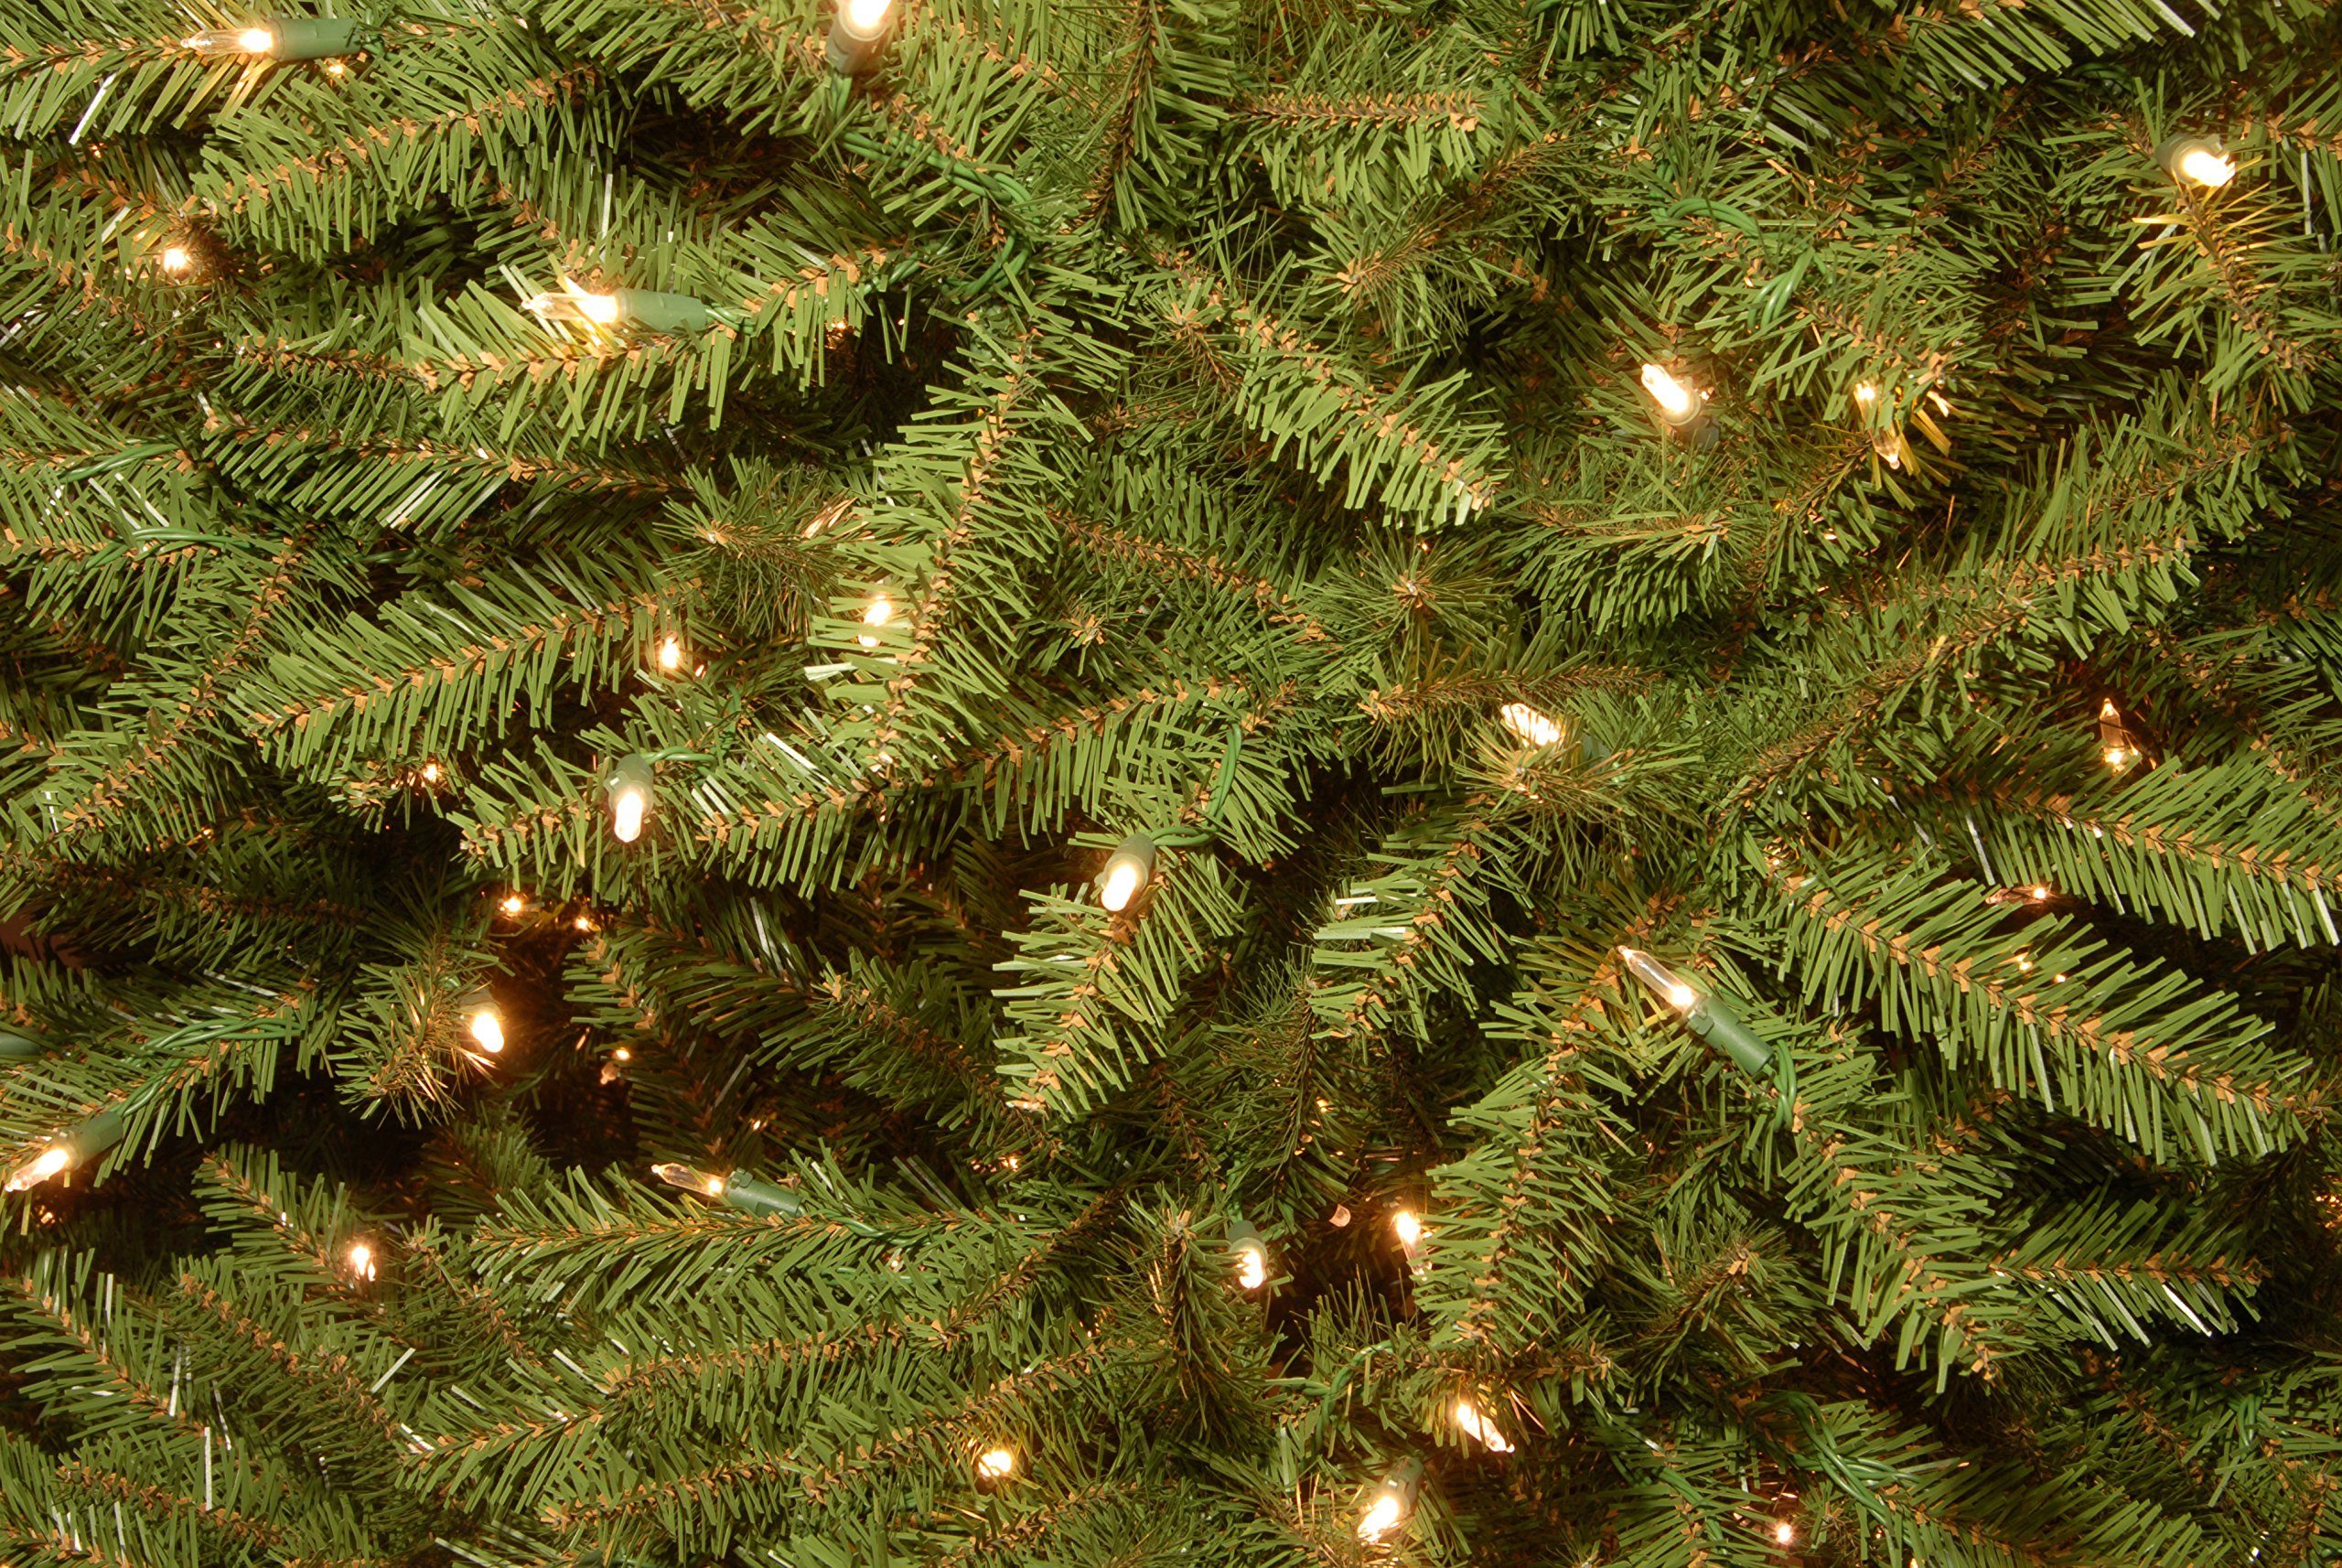 National Tree 6.5 Foot Dunhill Fir Tree with 650 Clear Lights (DUH3-65LO) by National Tree Company (Image #1)